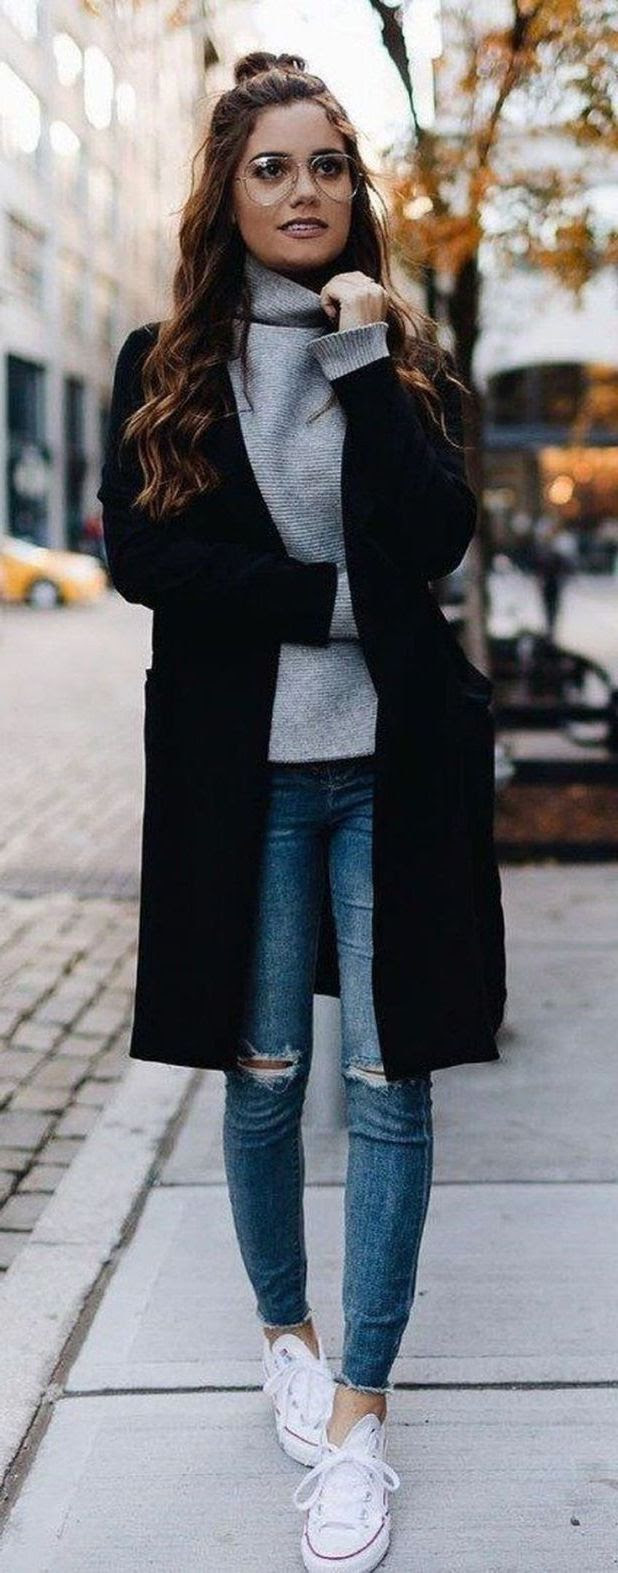 best winter street style outfits for women 2020